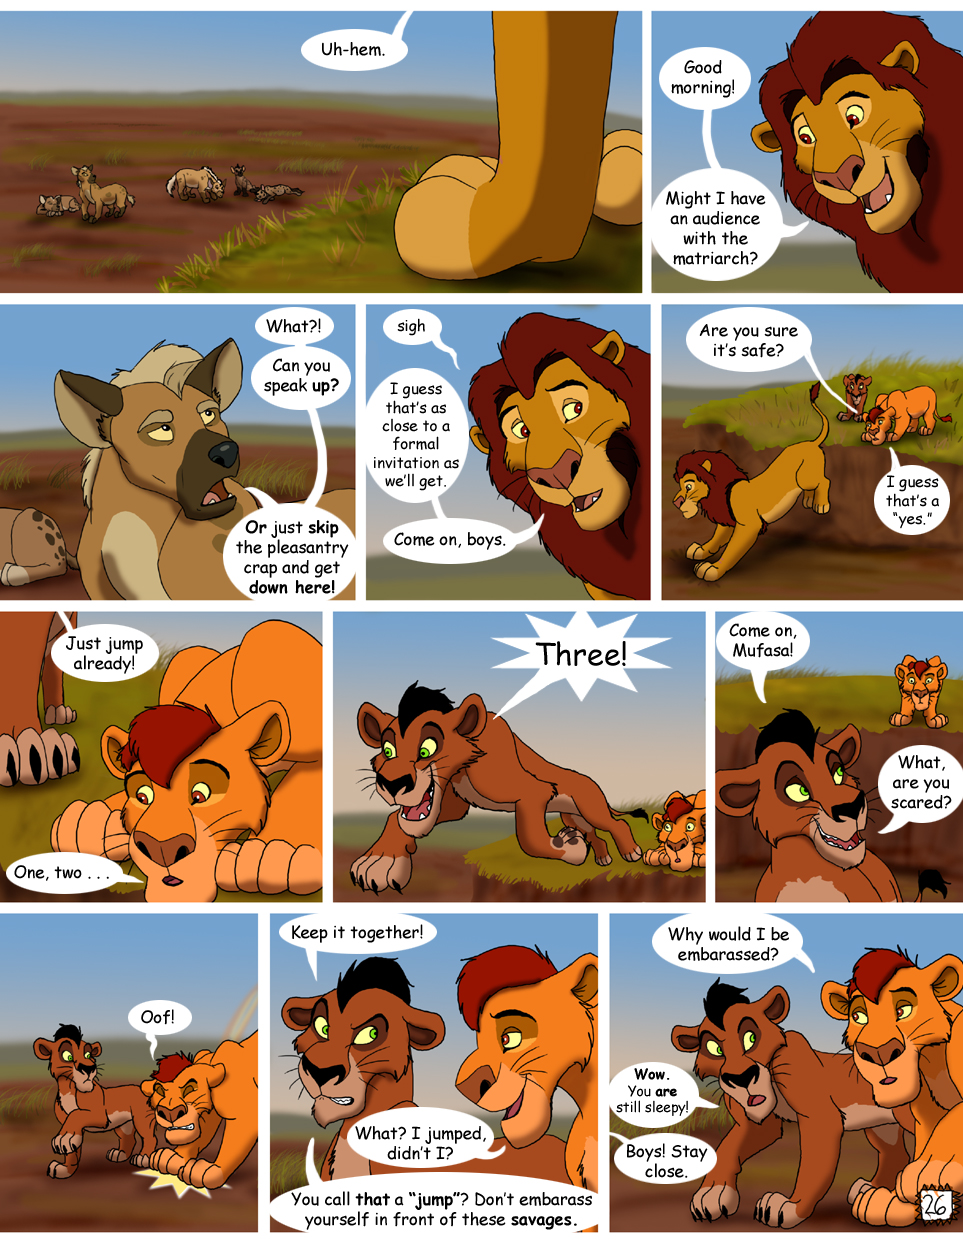 Brothers - Page 26 by Nala15